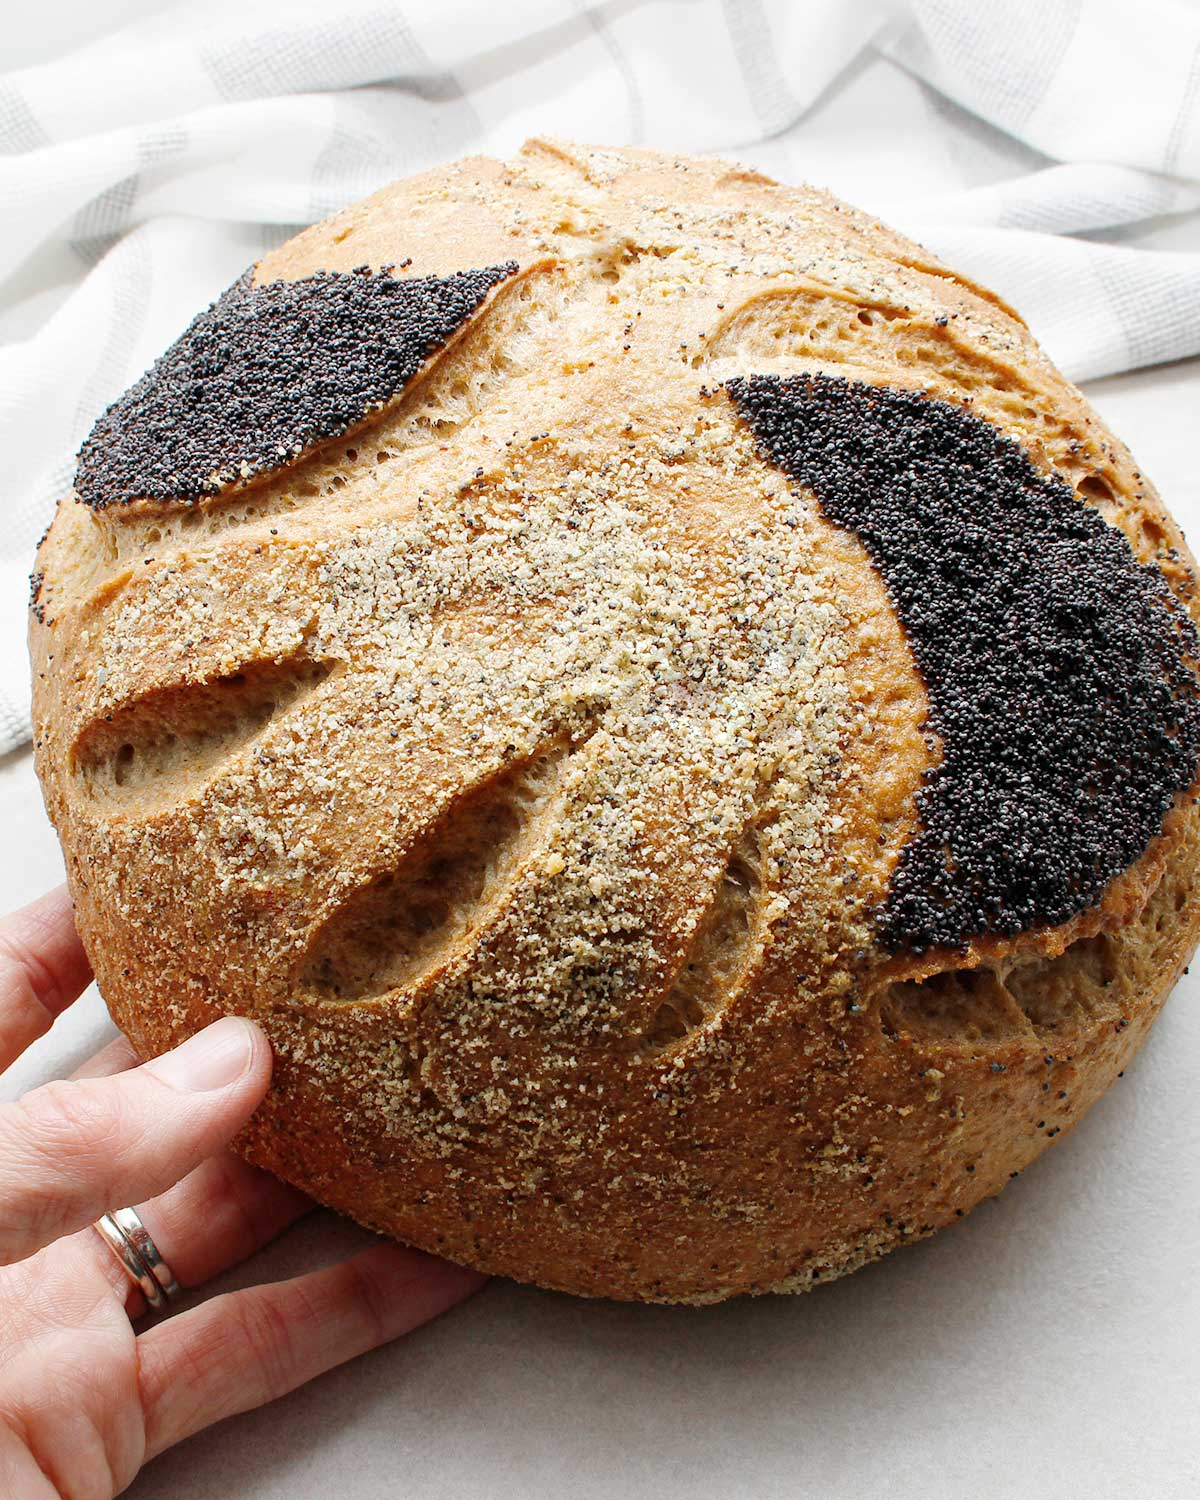 Wild yeast bread boule decorated with poppy seeds